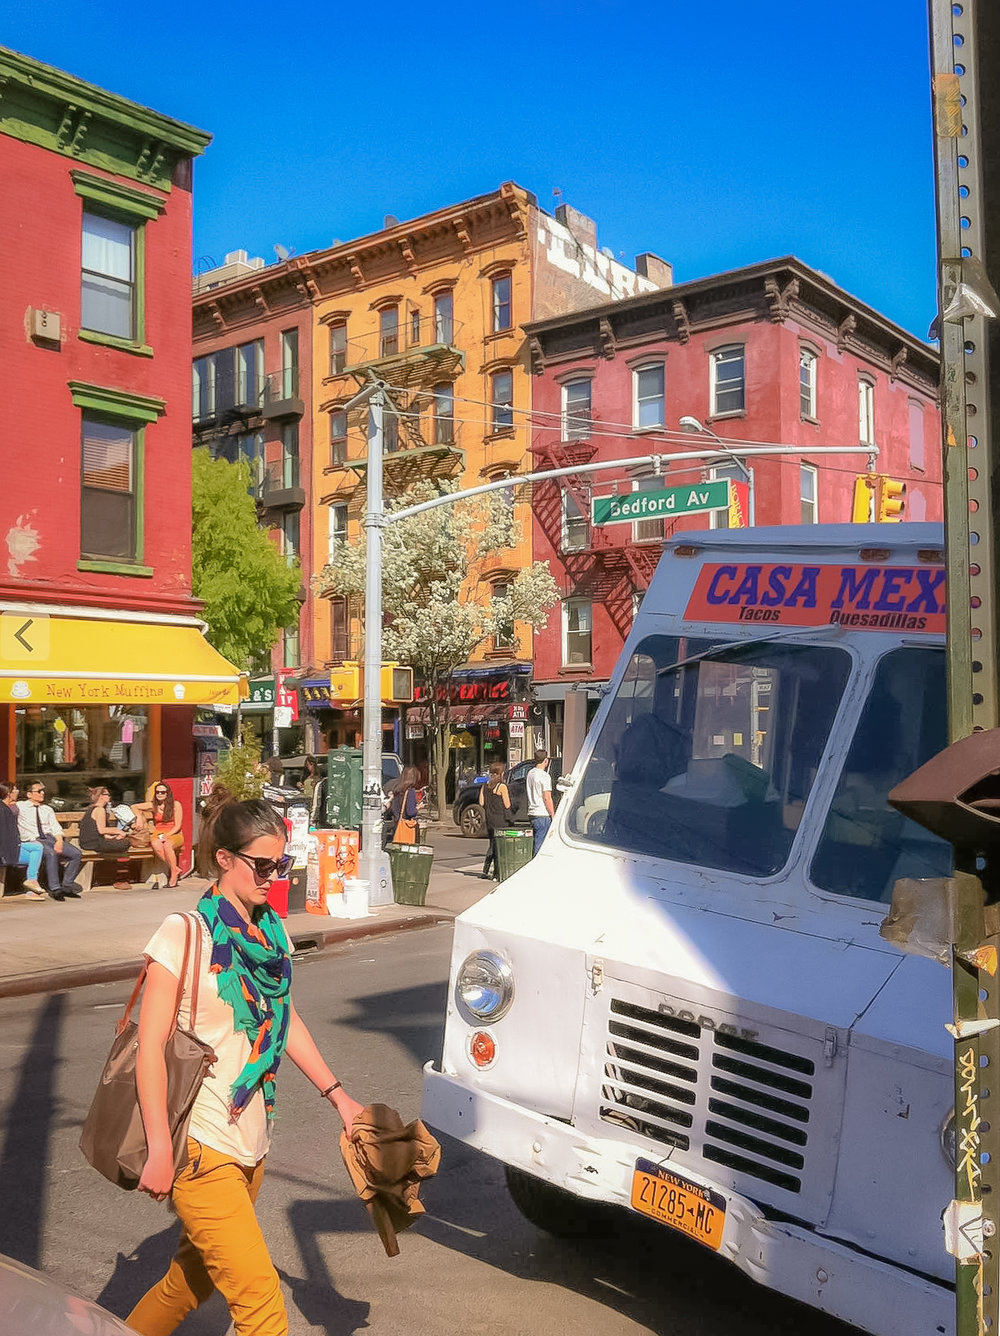 you can feel williamsburg's vibrant vibe in the air. photo by lucas compan